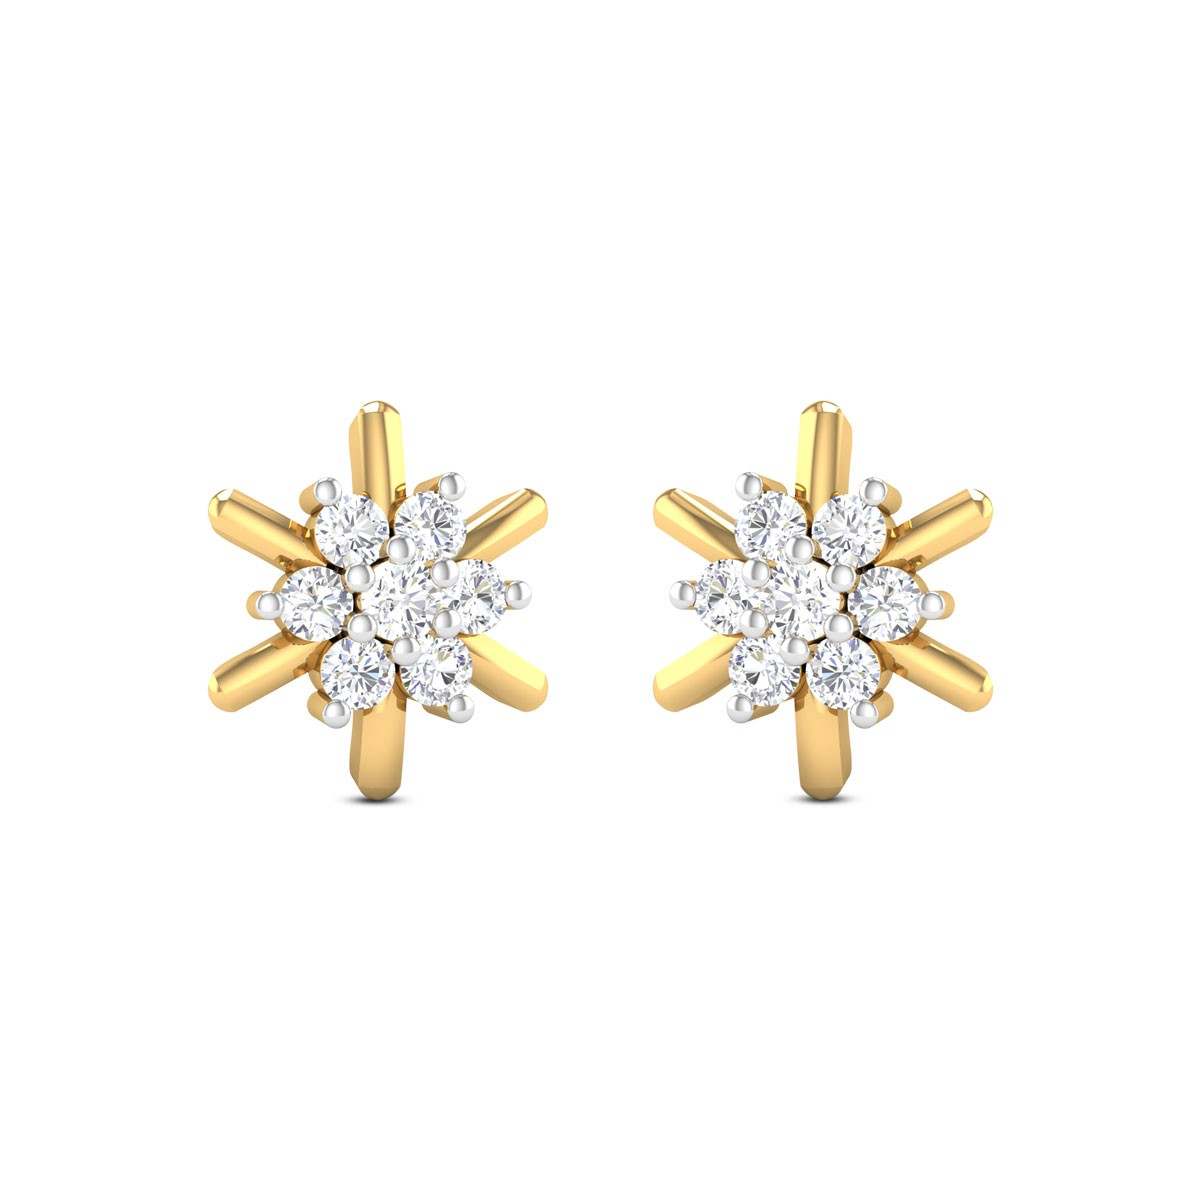 Prada Collection Diamond Earrings